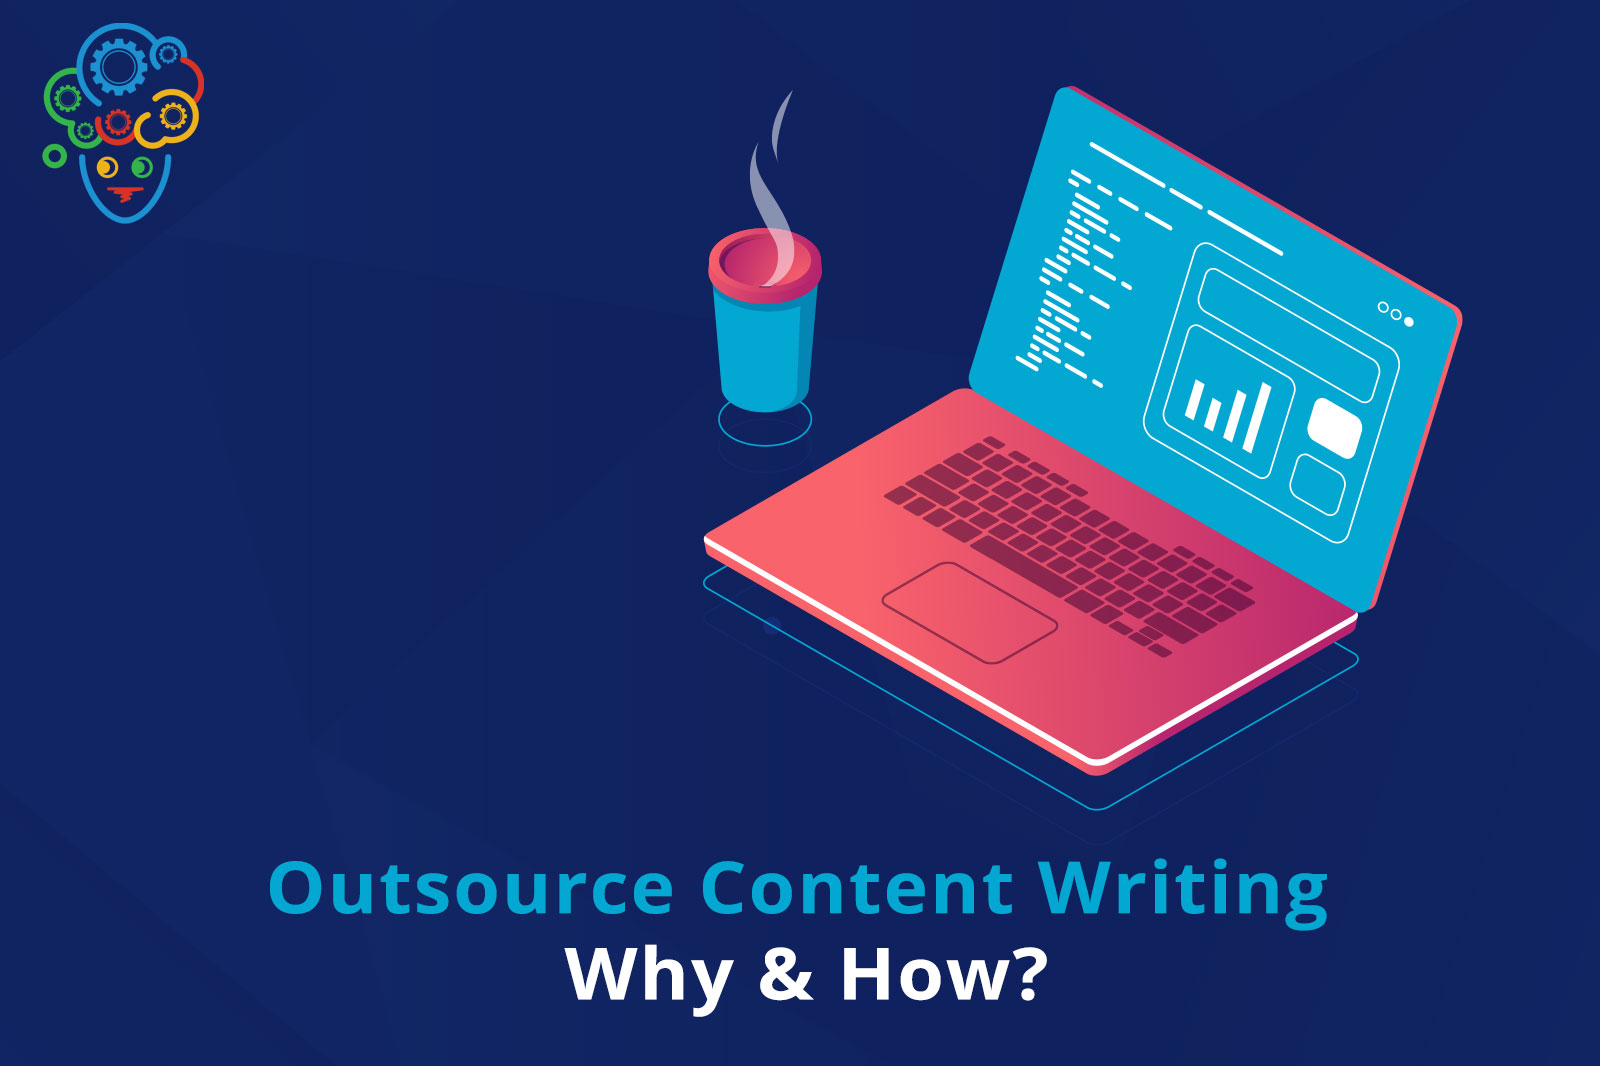 Outsource Content Writing - Why And How